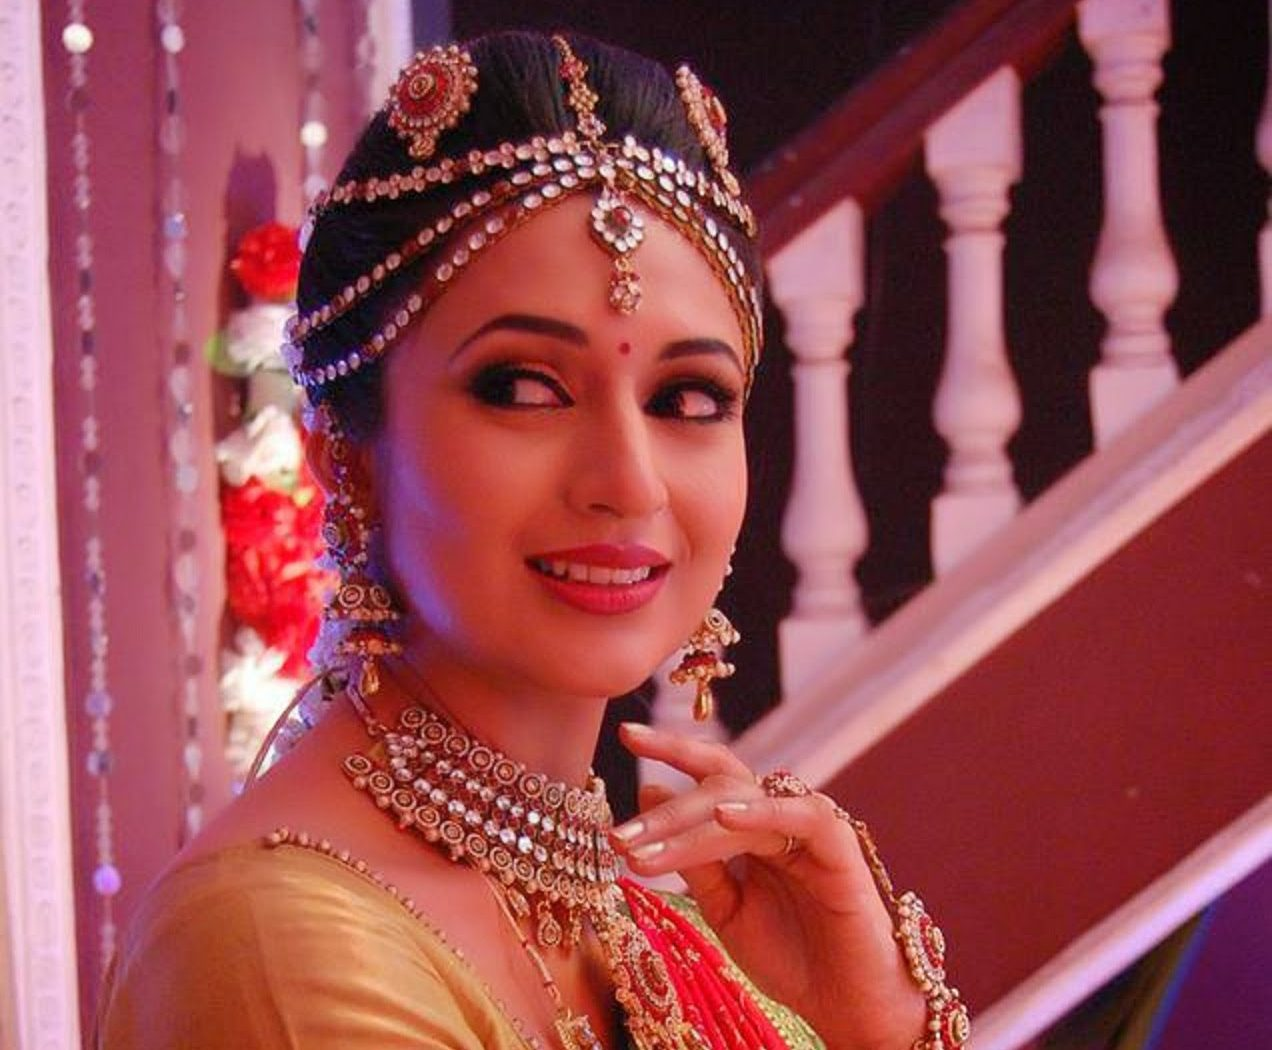 Divyanka Tripathi Beautiful Hd Wallpaper Hd Wallpapers Hd Backgrounds Tumblr Backgrounds Images Pictures